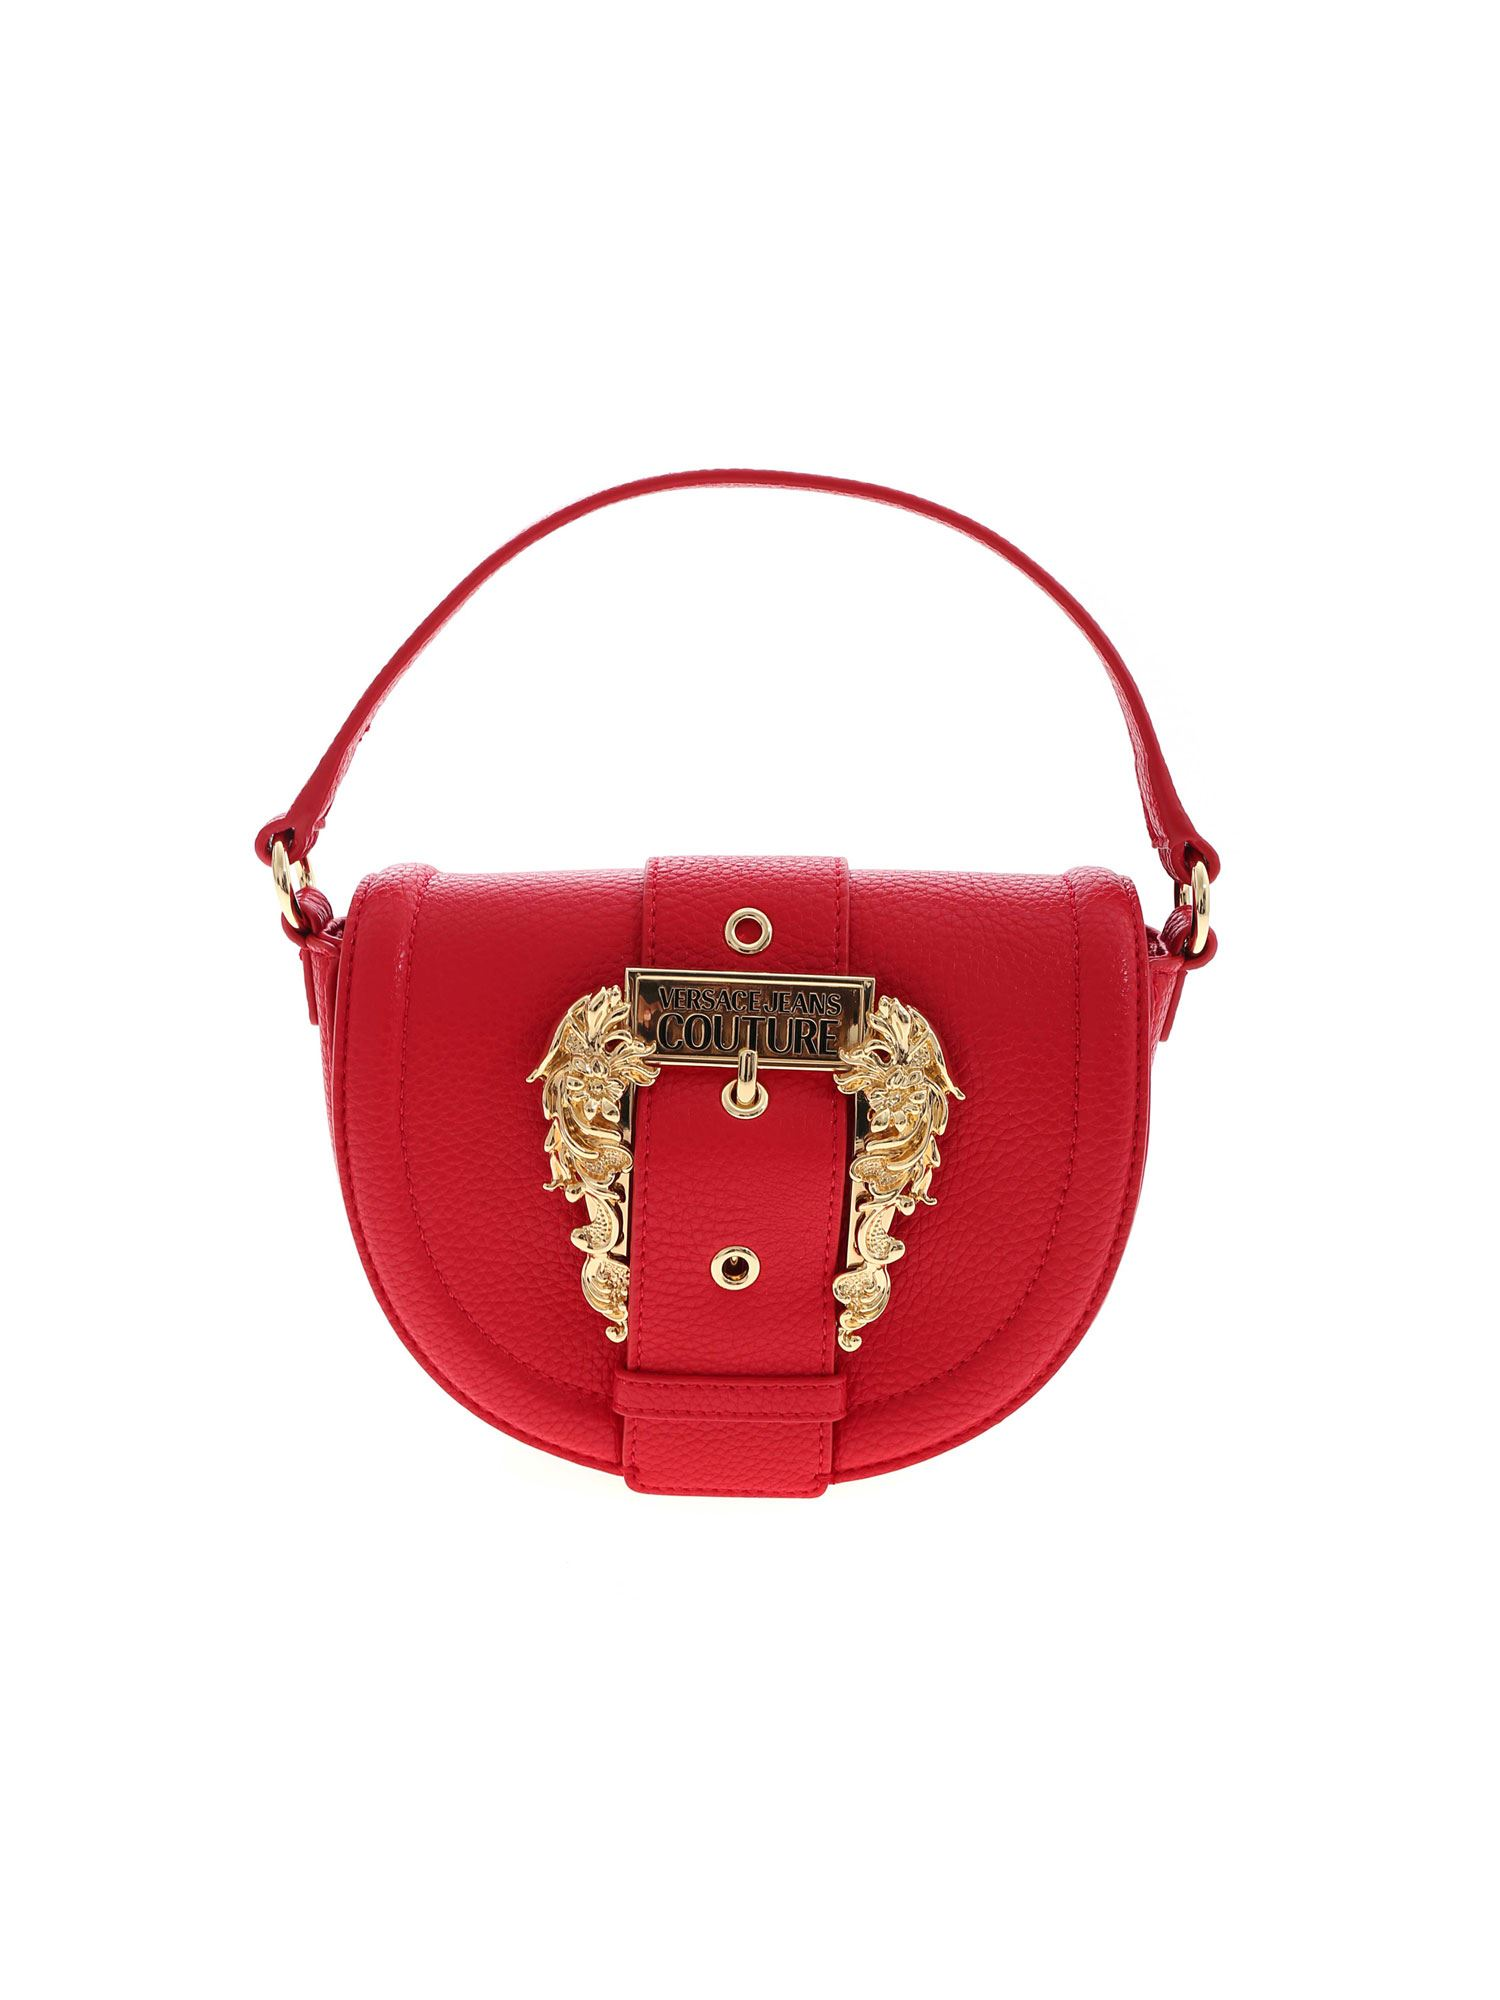 Versace Jeans Couture Leathers COUTURE HANDBAG IN RED